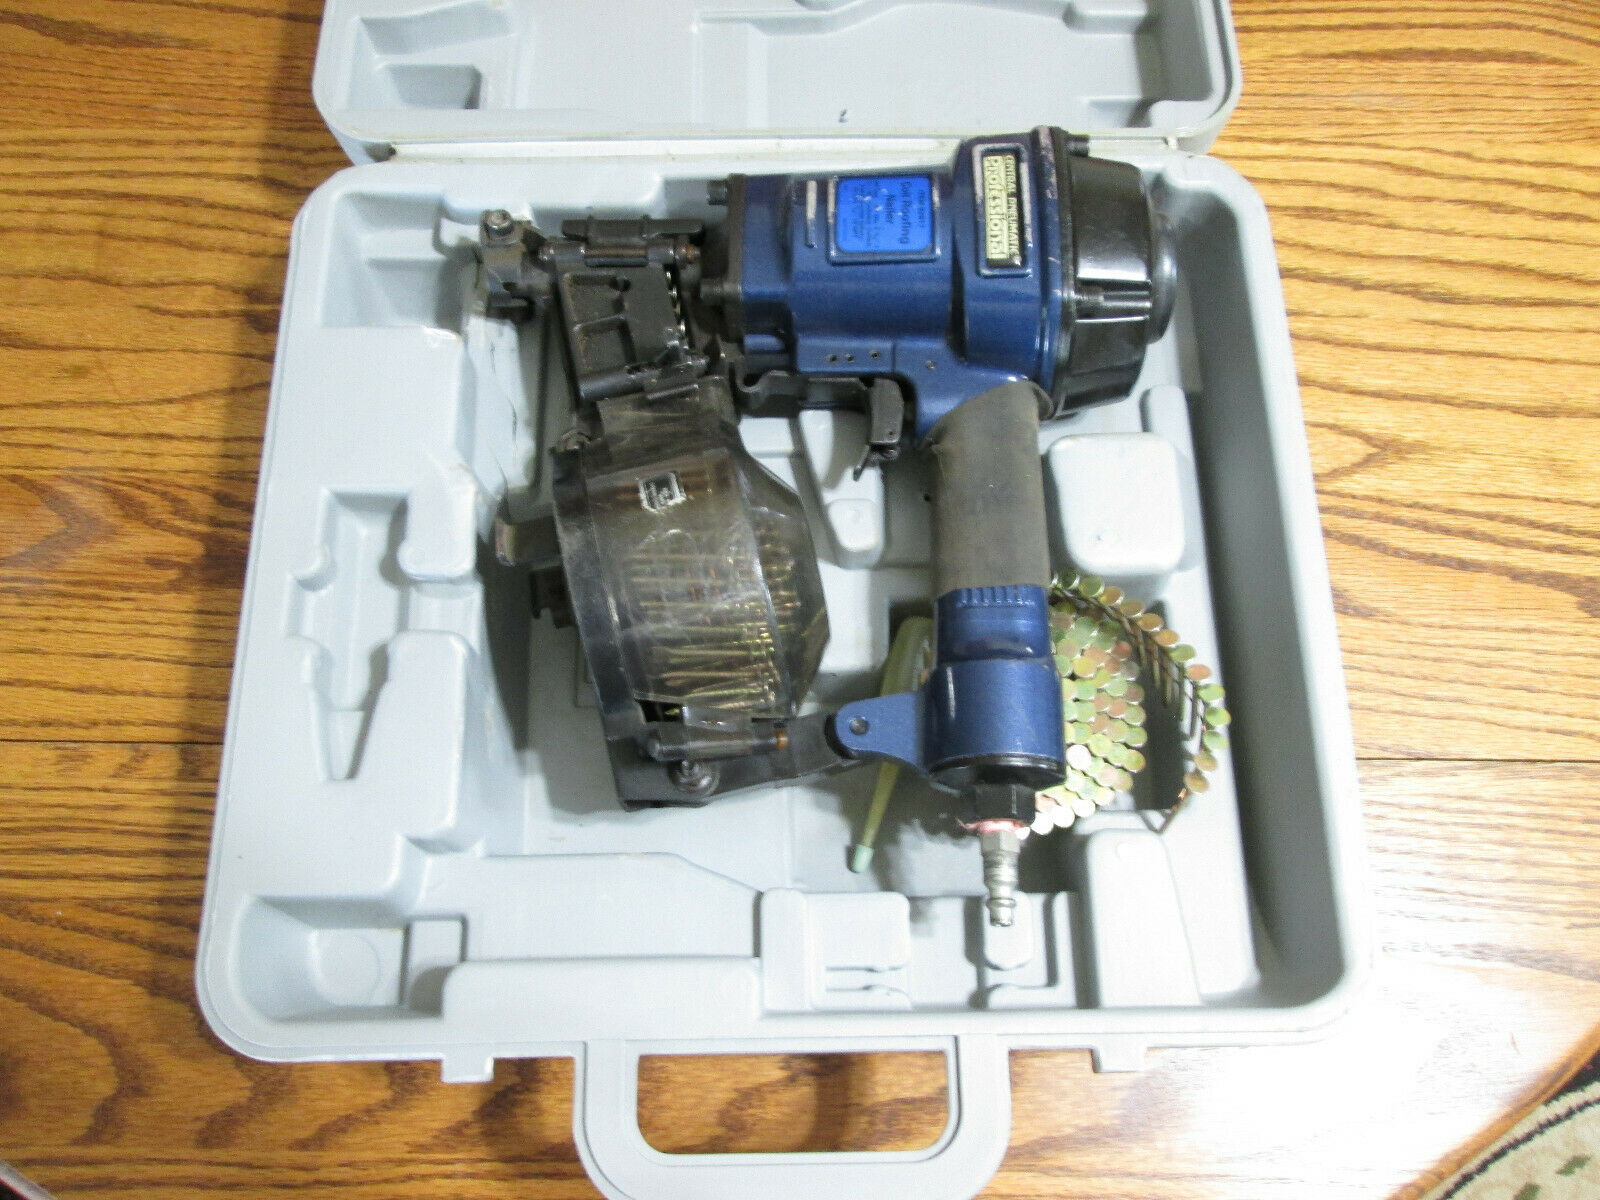 CENTRAL PNEUMATIC PROFESSIONAL COIL ROOFING NAILER 92917 WITH CASE 10 GAUGE.